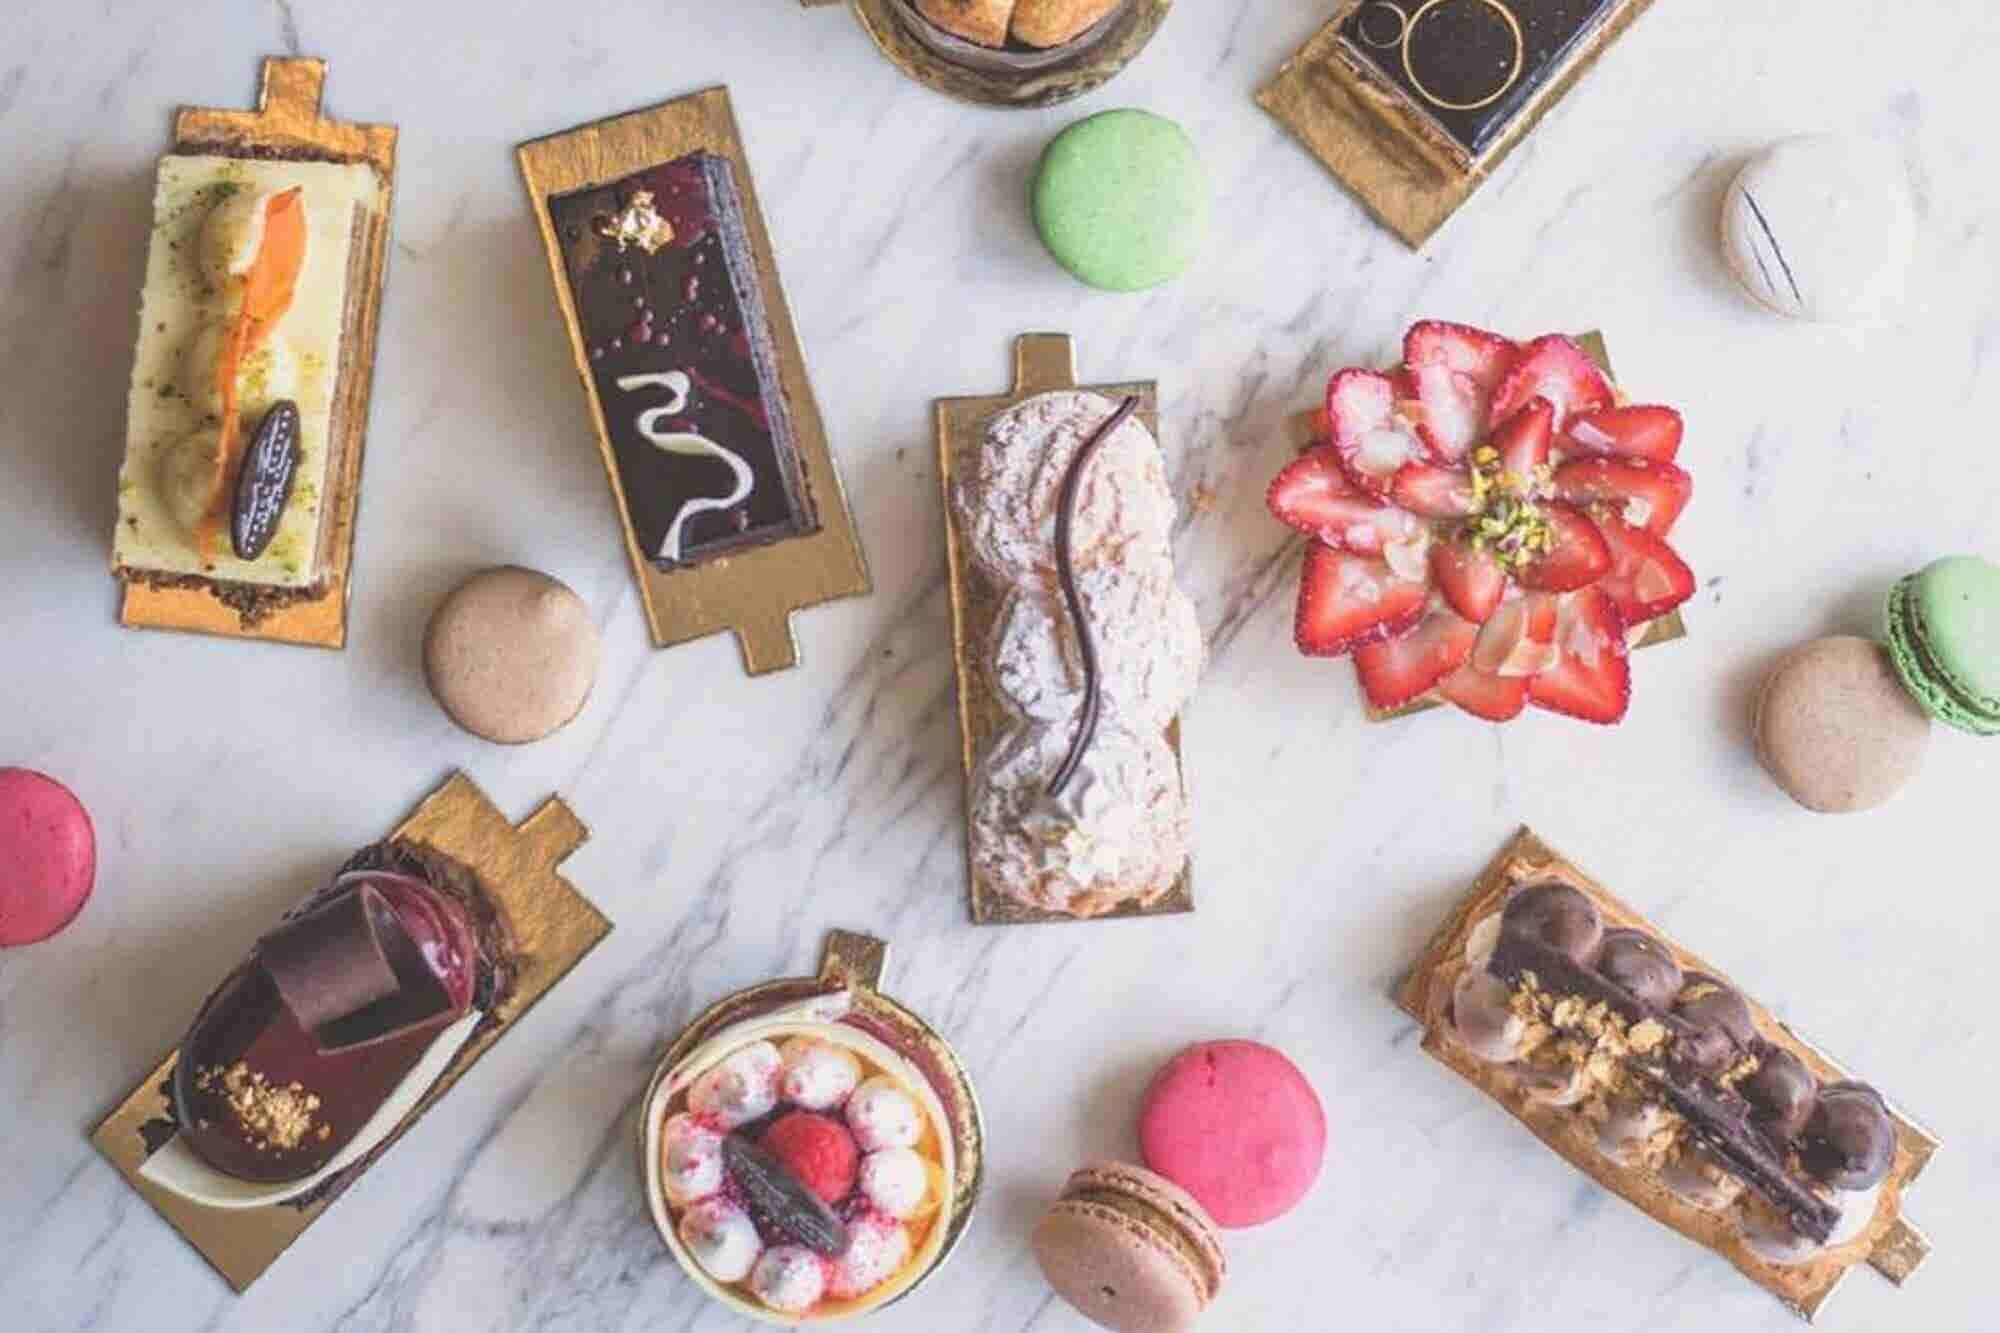 This French Bakery Wants to Take over Asia